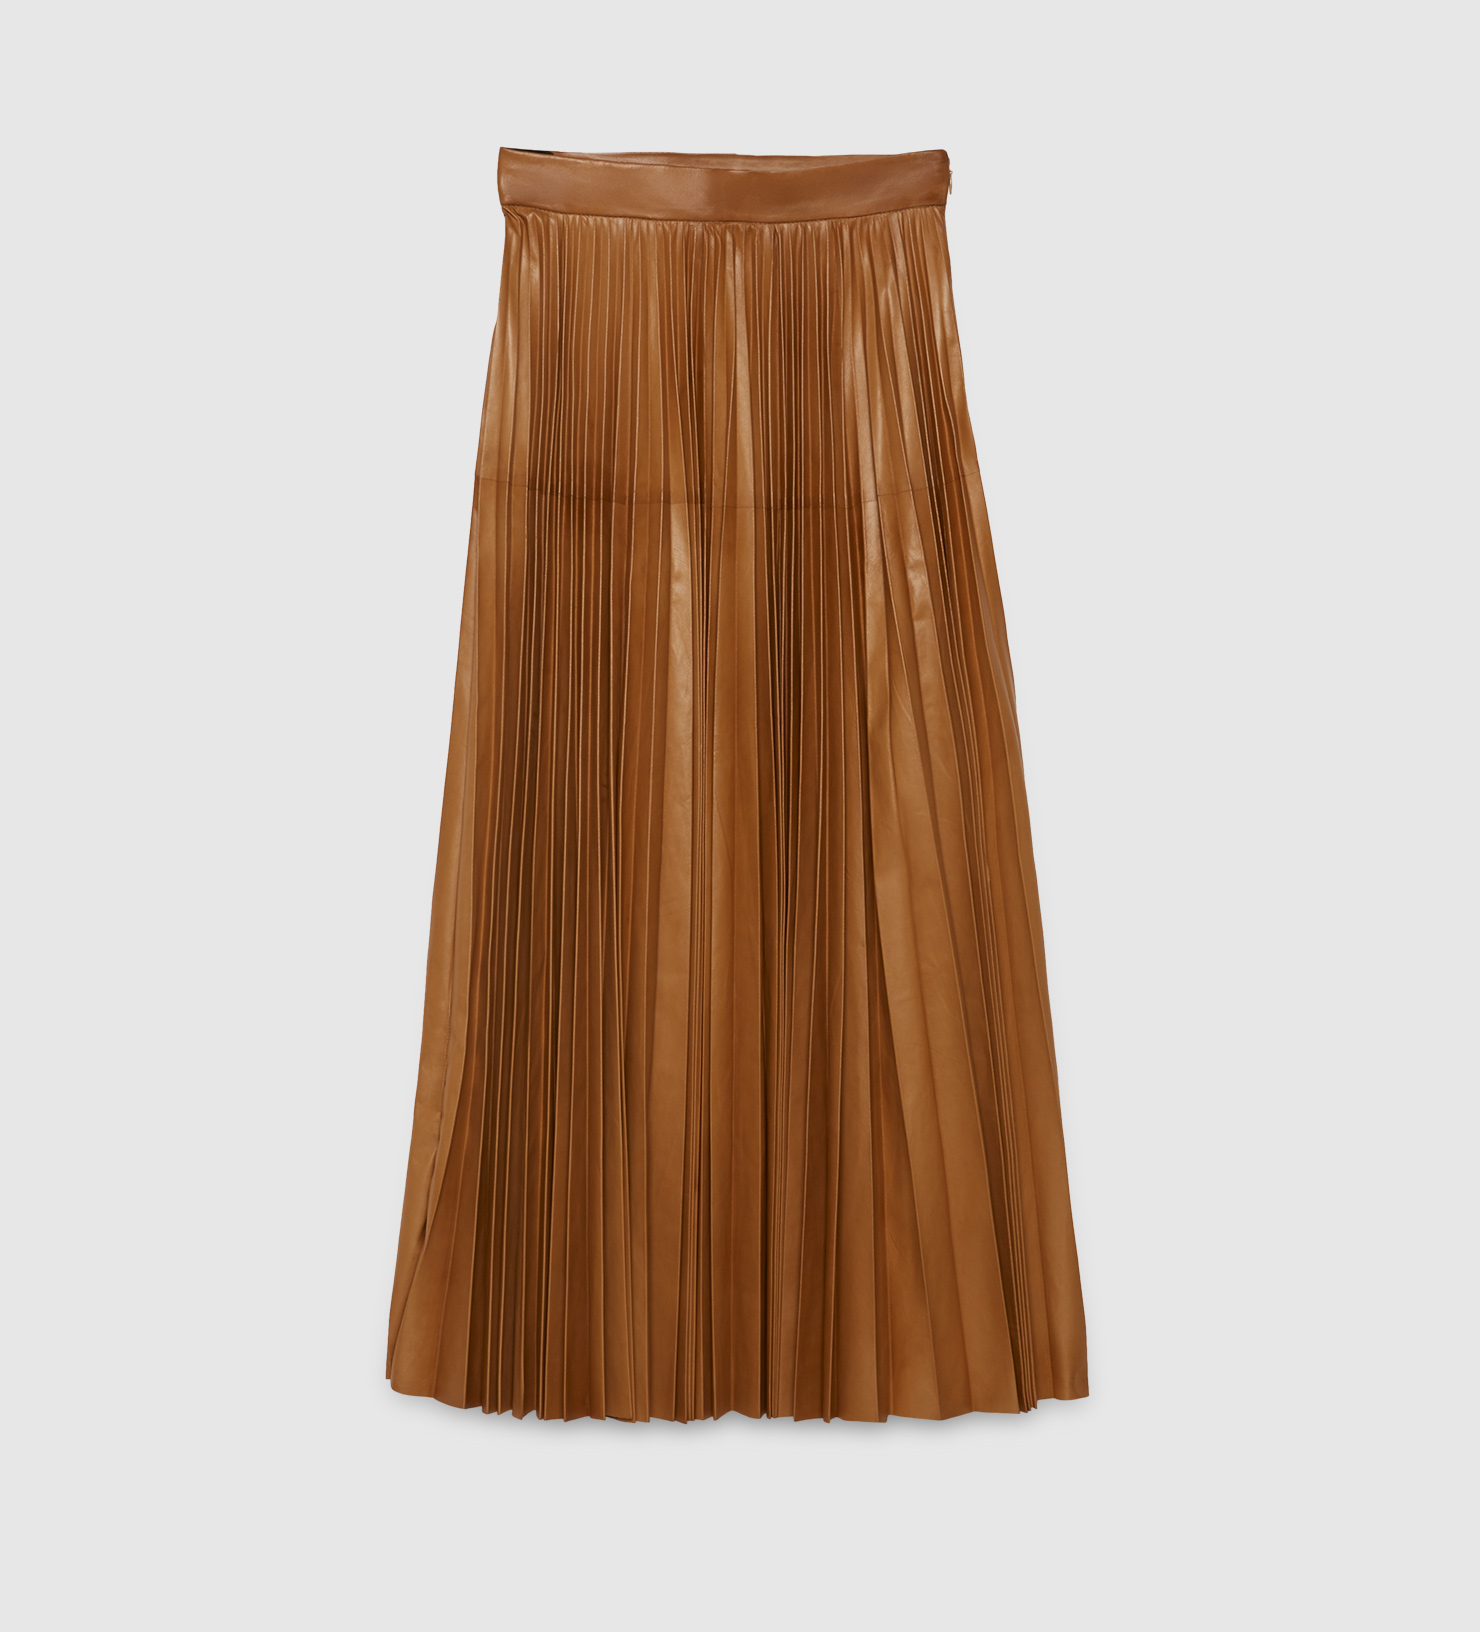 Gucci Pleated Leather Skirt in Brown | Lyst